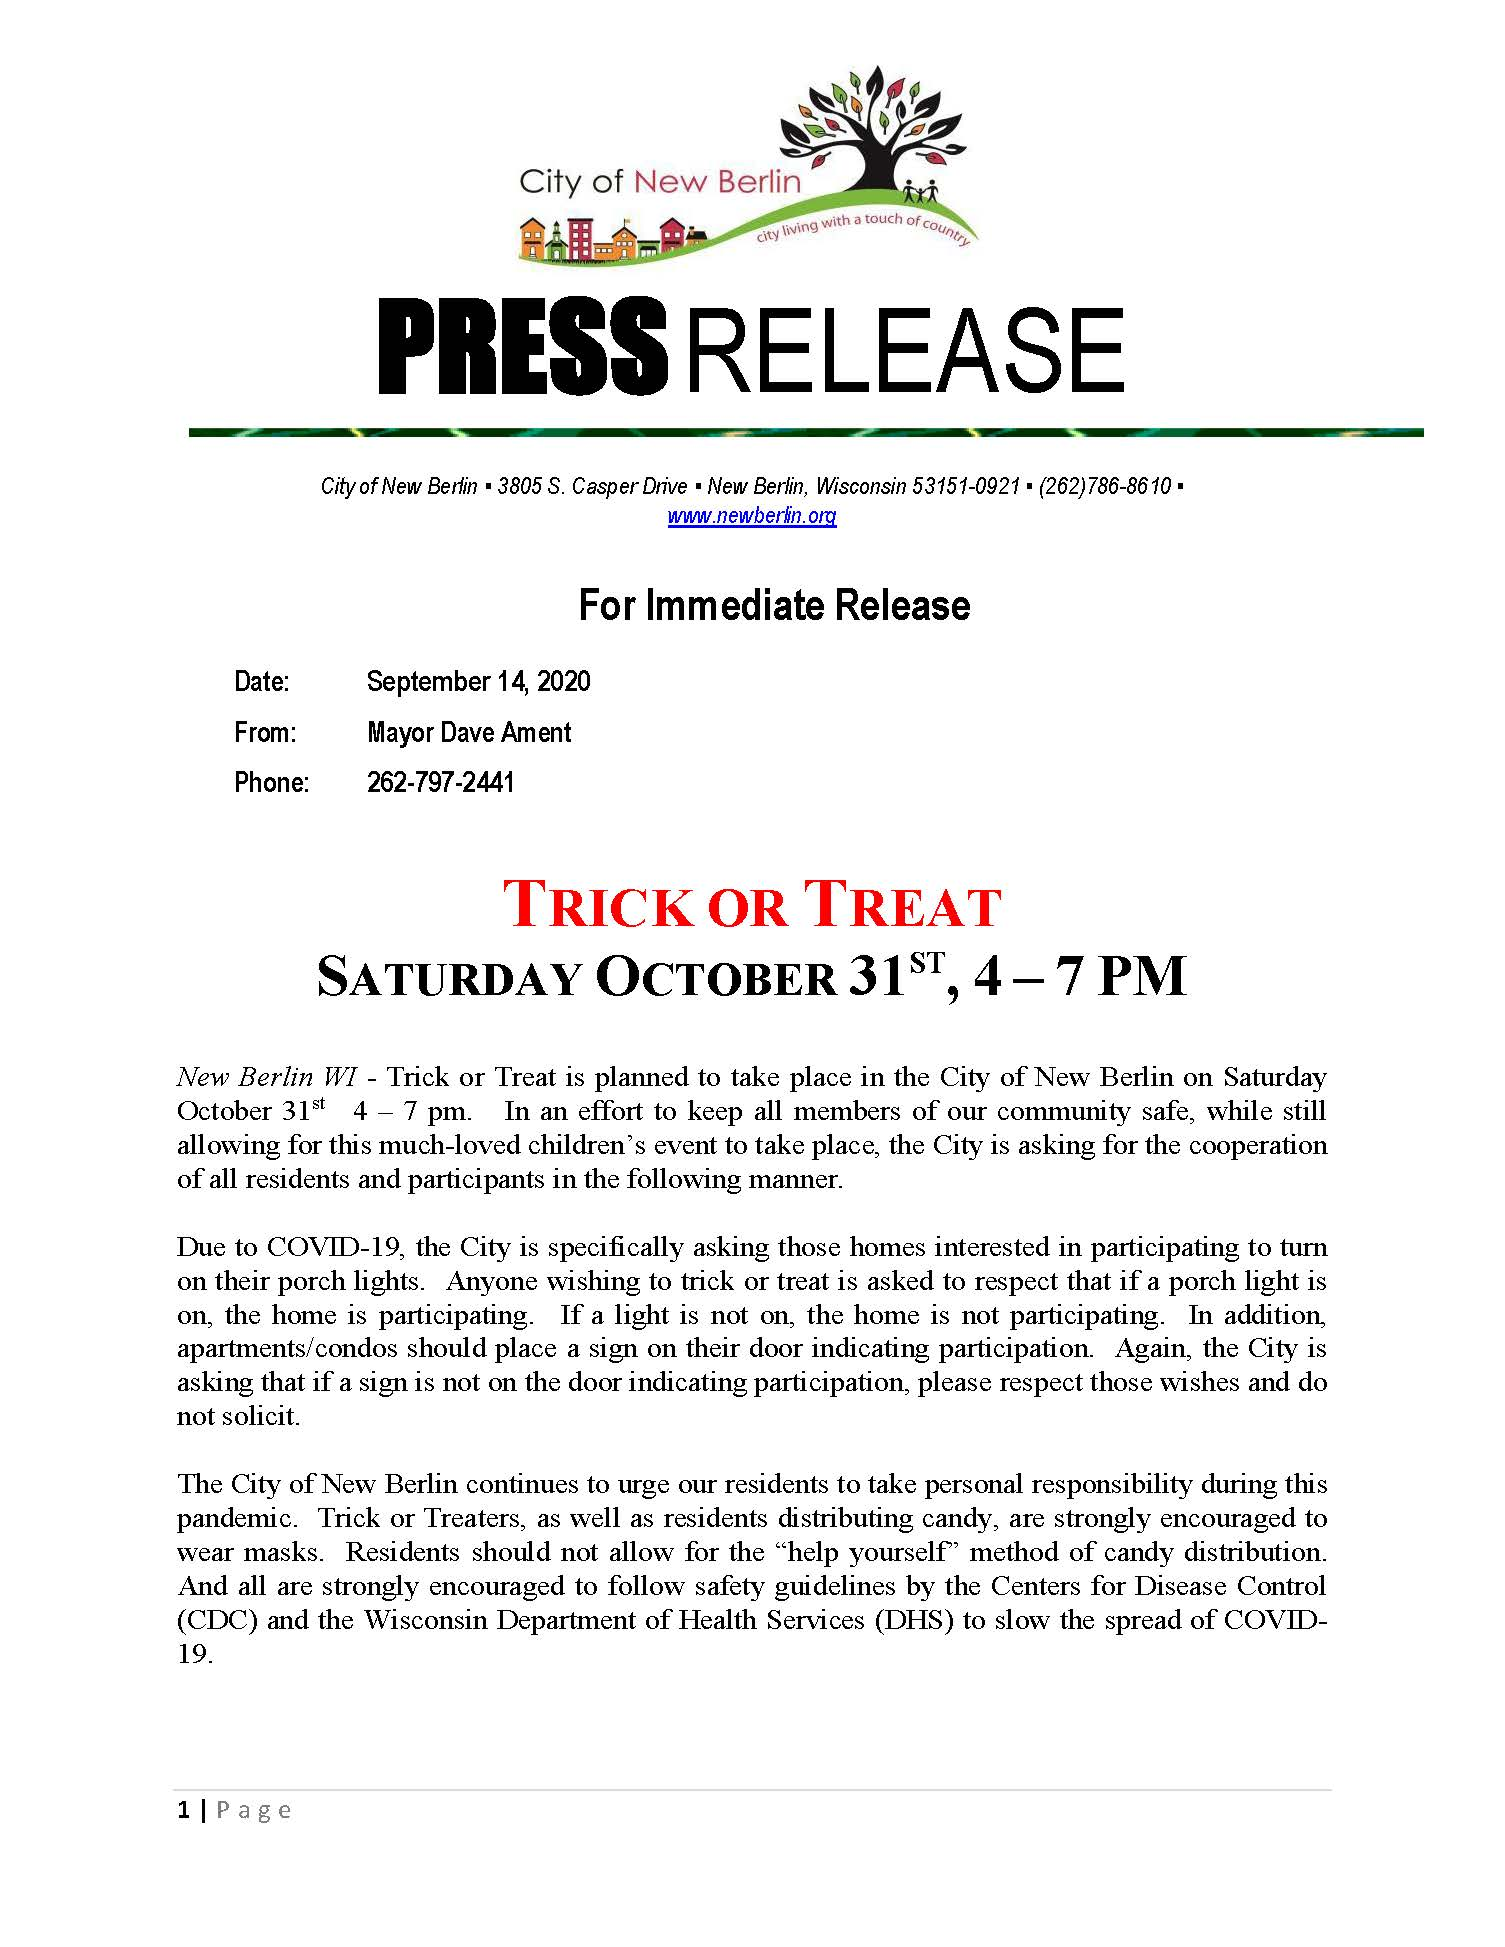 Press Release - Trick or Treat_Page_1